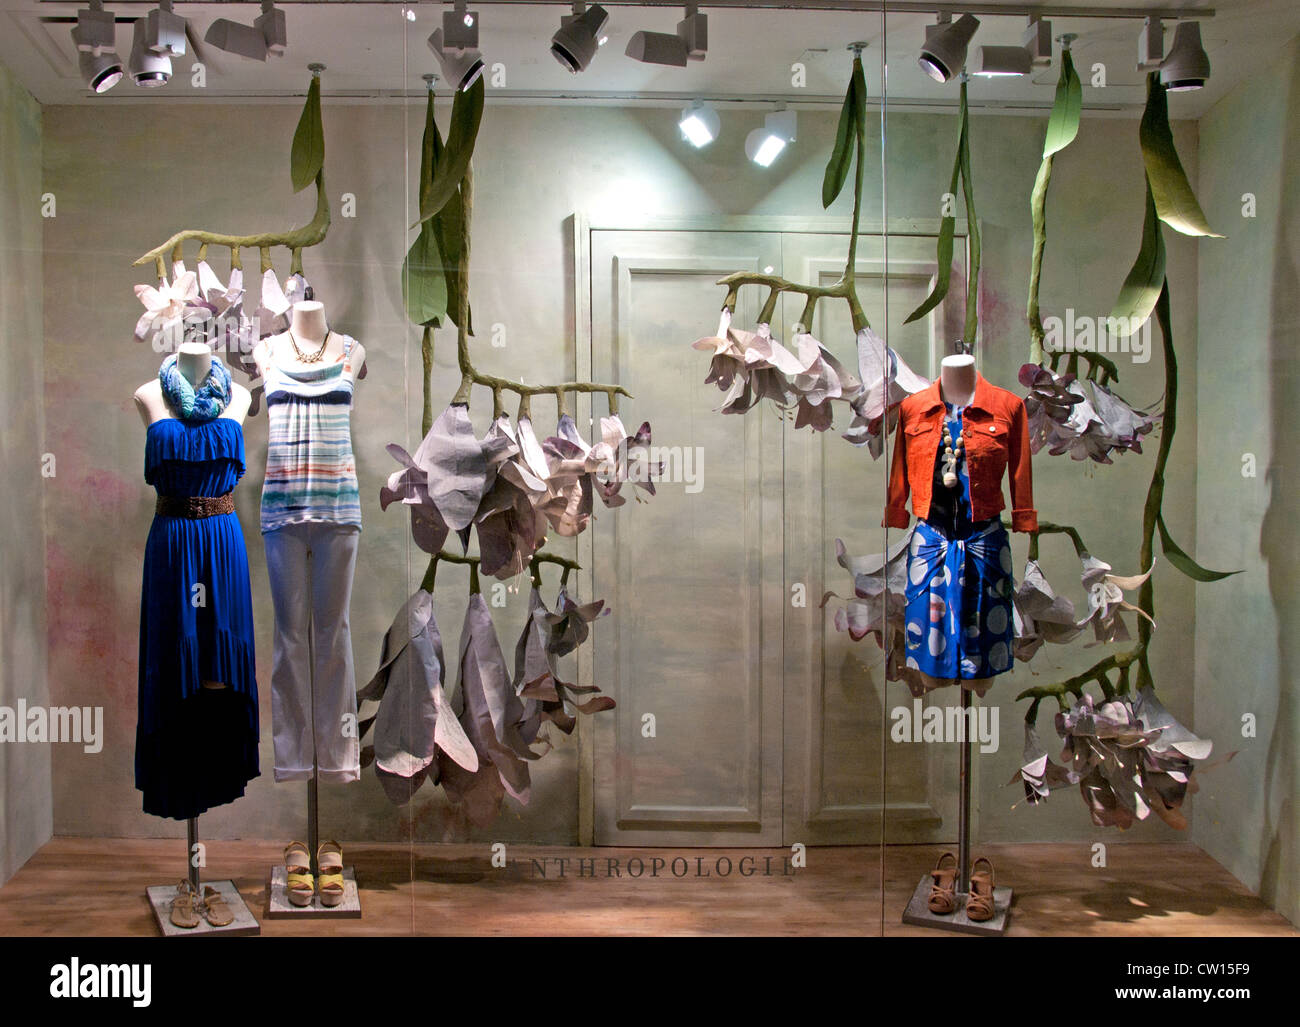 Antropologie Fashion shop  Chelsea Market Meatpacking District  Manhattan New York City - Stock Image